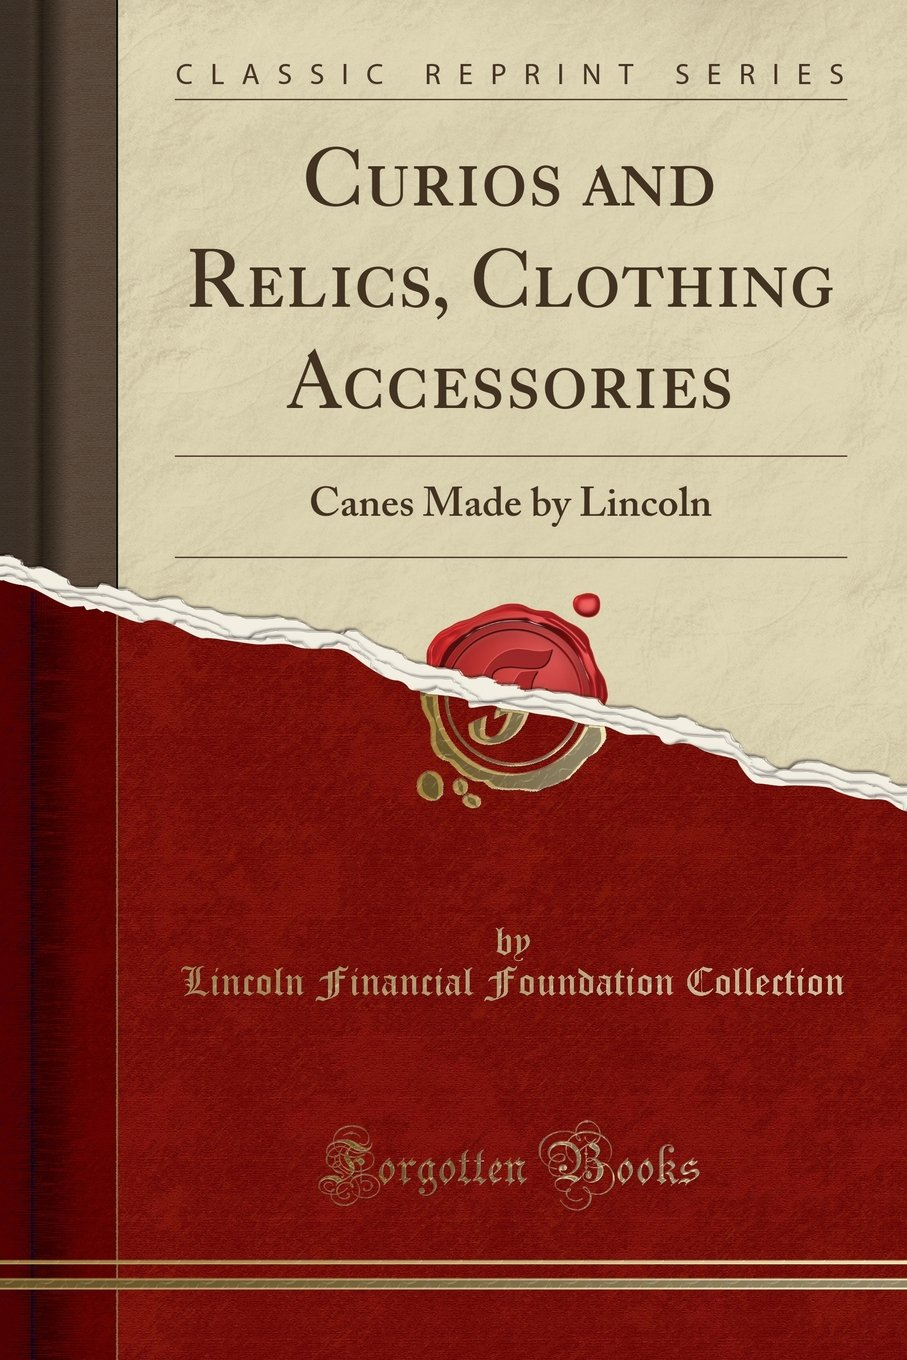 Curios and Relics, Clothing Accessories: Canes Made by Lincoln (Classic Reprint) pdf